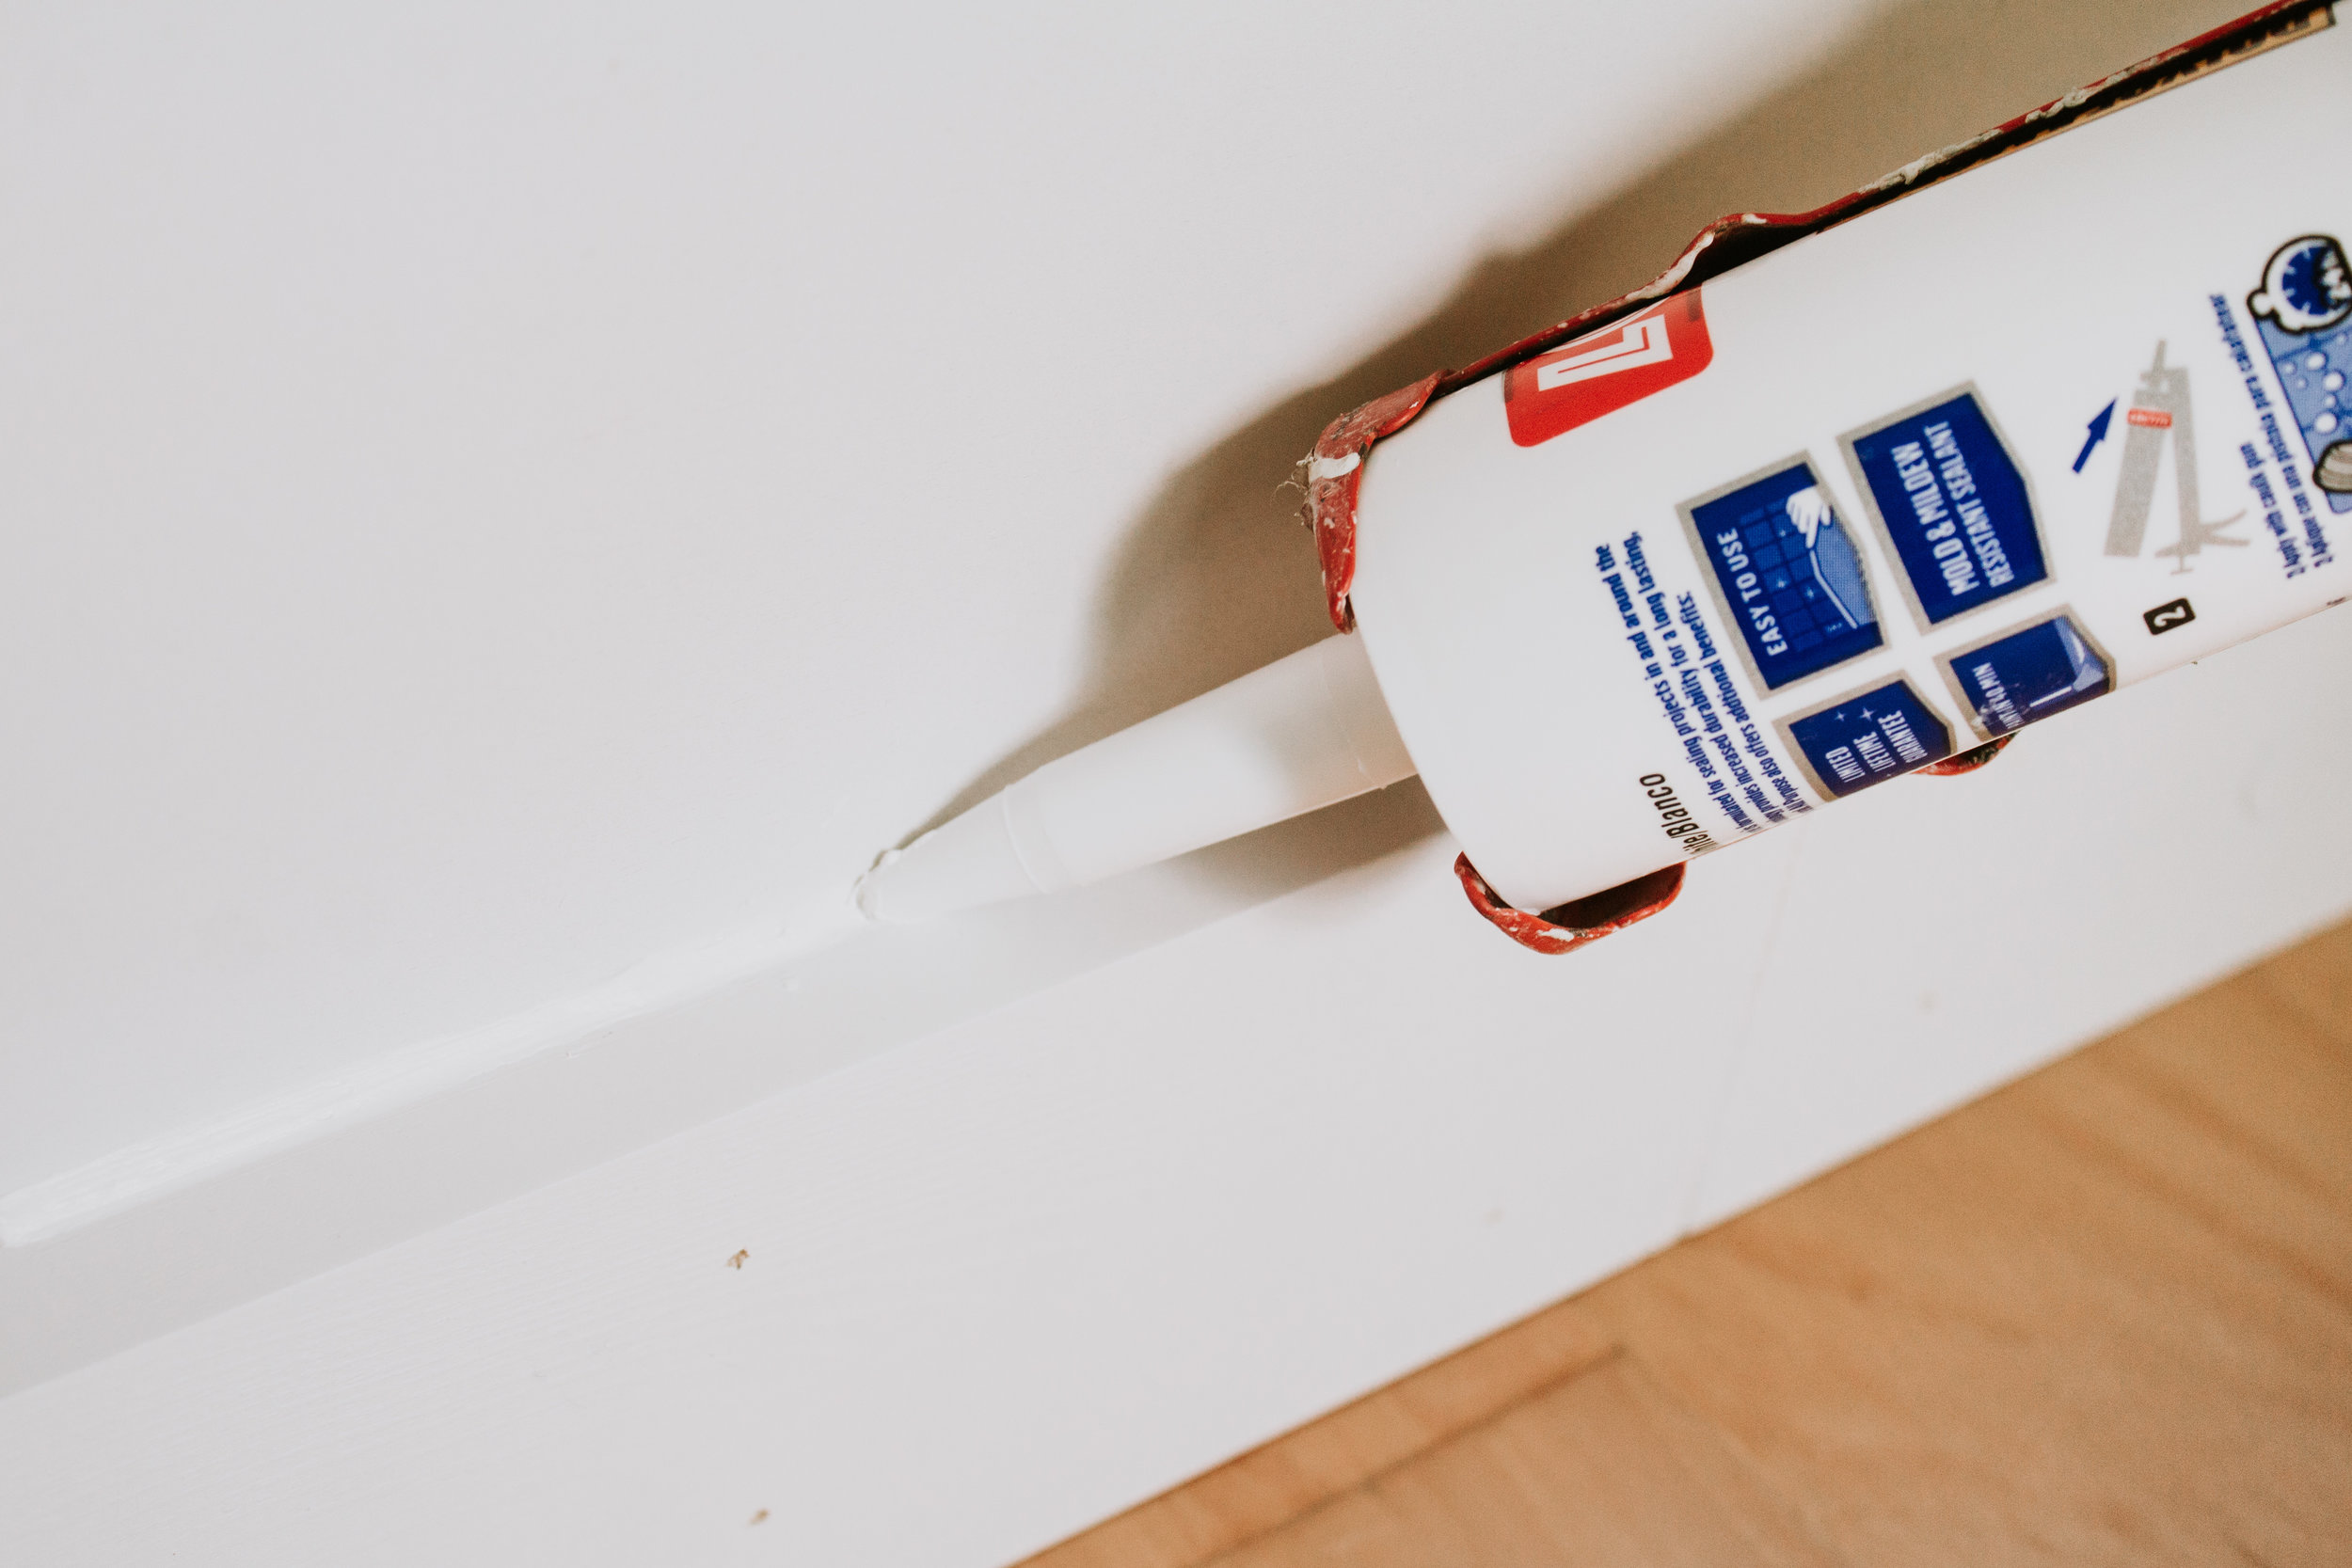 How to Install Floor Trim Like the Professionals - How to cut trim, nail it on the wall, and fill in imperfections. How to fix gaps in floor trim.  Nadine Stay